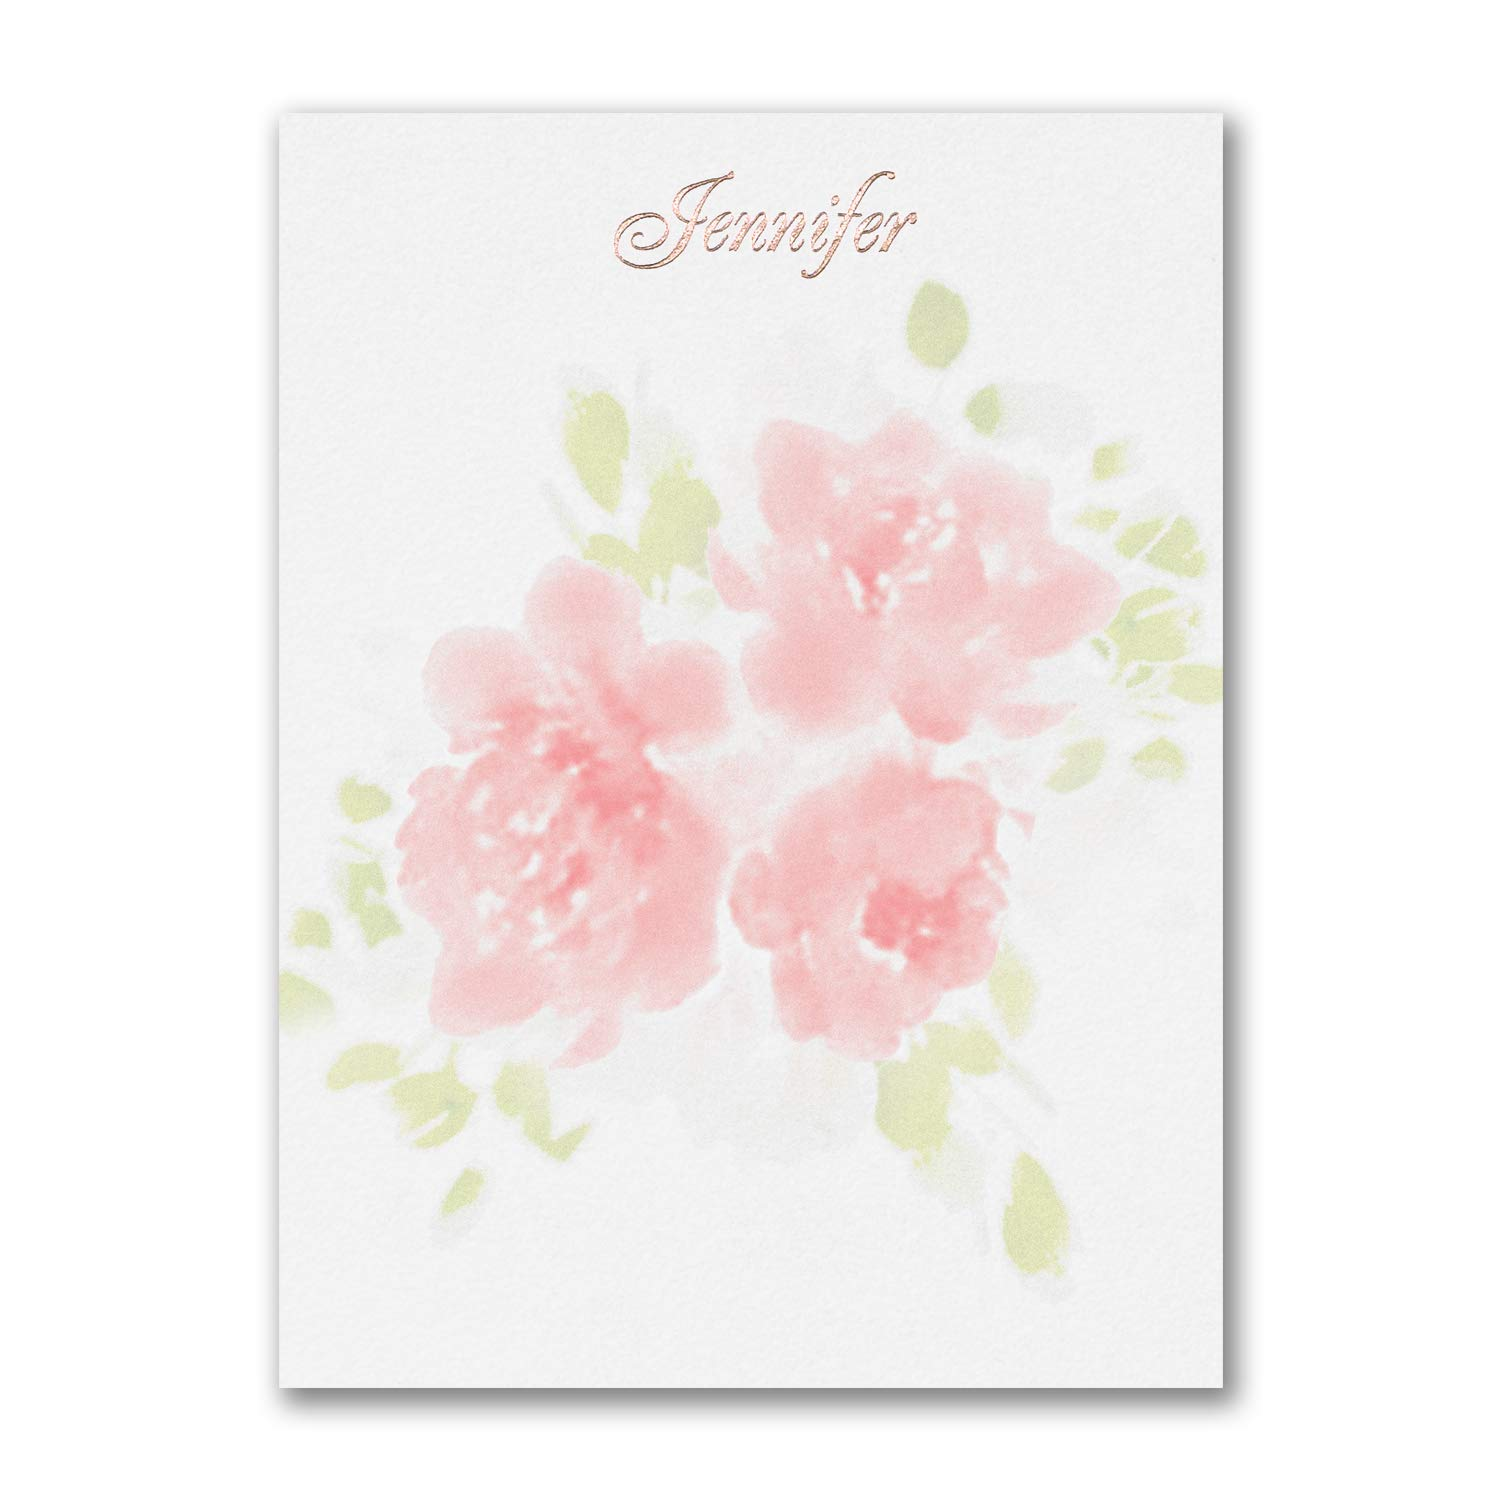 575pk Flower Pattern - Note Card-Note Cards